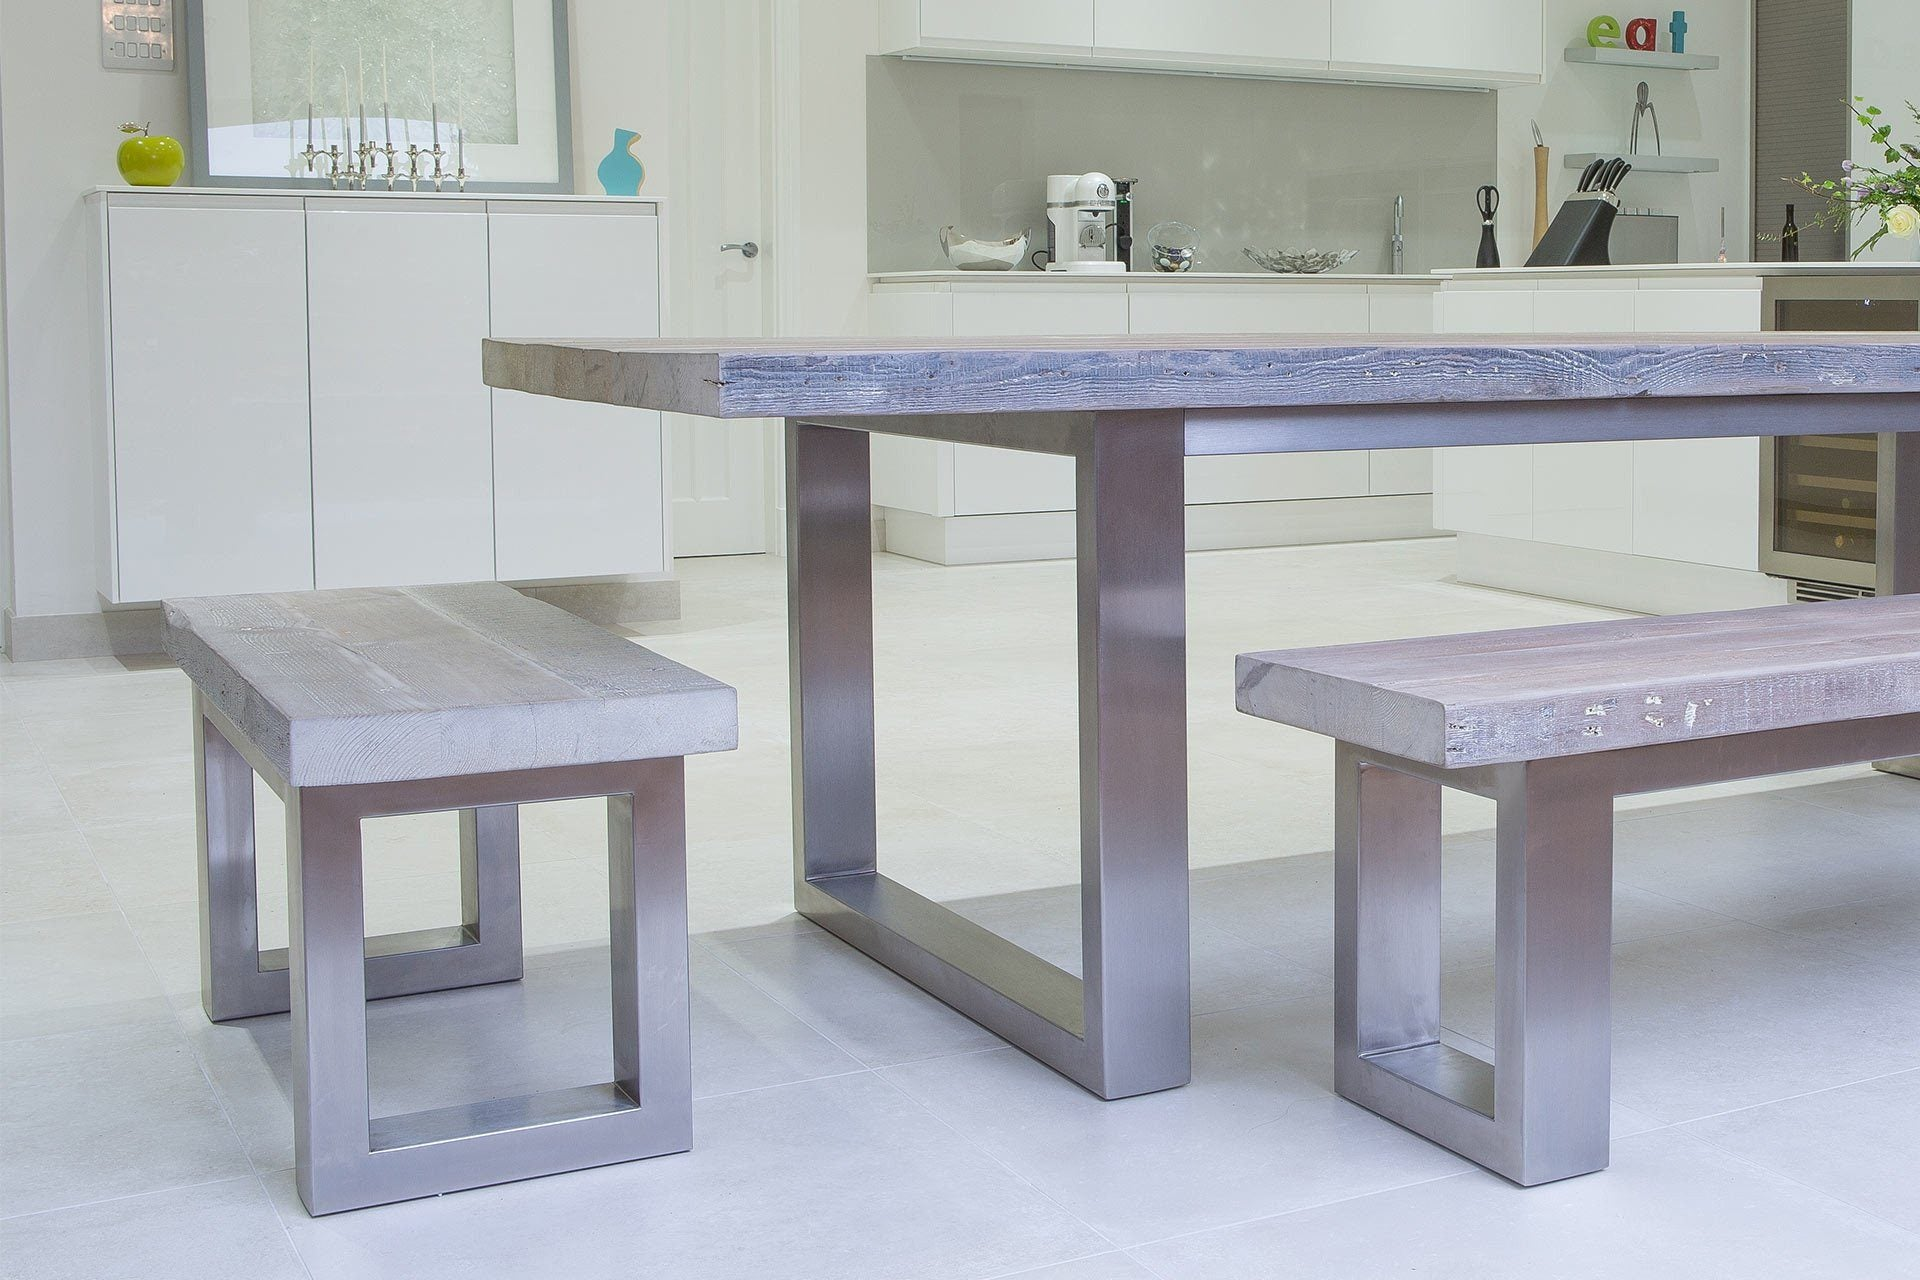 Grey Long Overhang Table With Side & End Benches (Sold Separately)